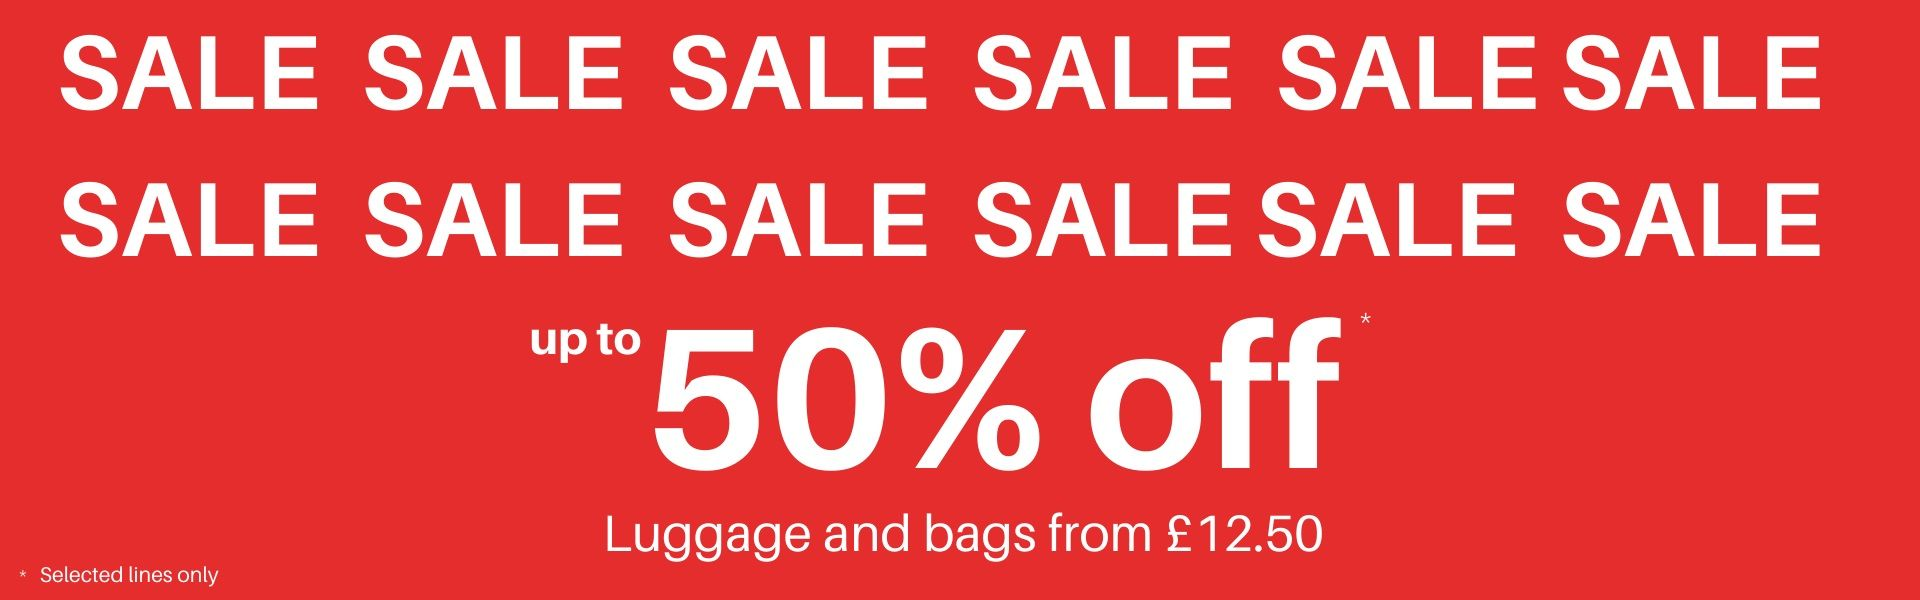 Sale Up to 50% off all luggage and bags